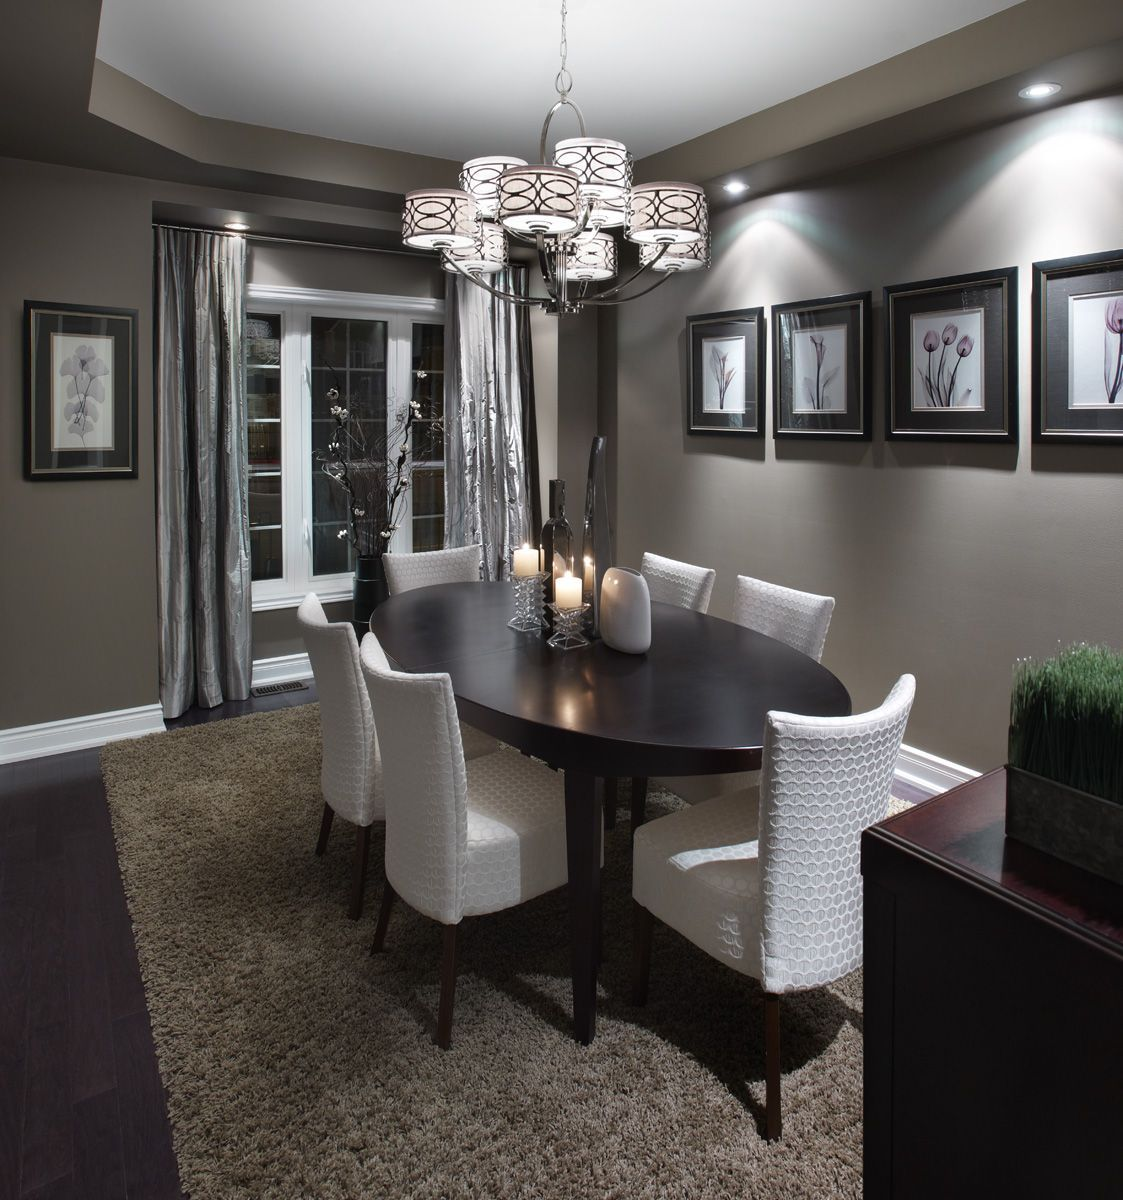 1000 ideas about dining room centerpiece on pinterest rustic recessed lighting dining room - Dining room recessed lighting ideas ...